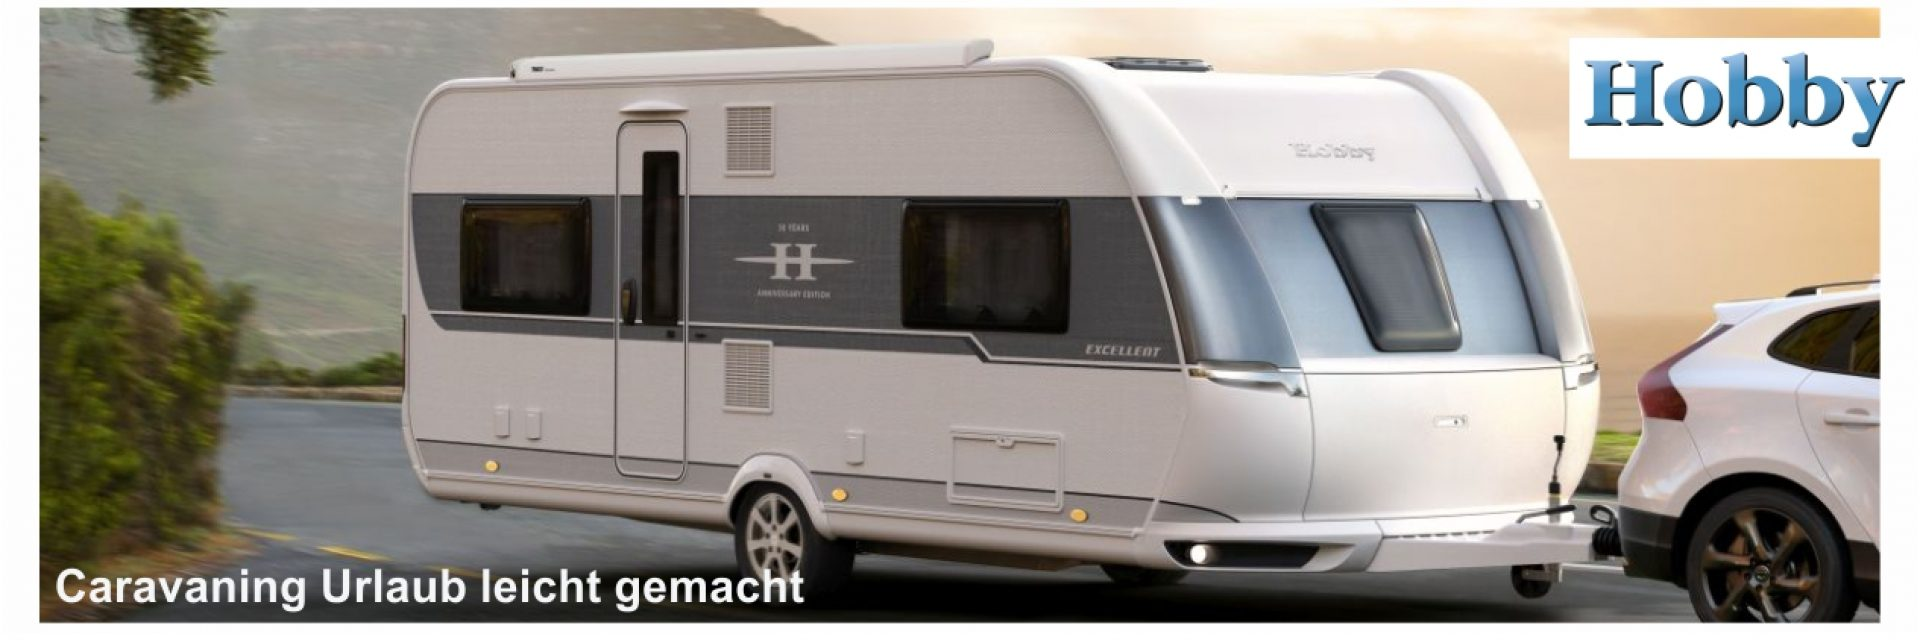 wirth camping ag reisemobile caravans camping. Black Bedroom Furniture Sets. Home Design Ideas